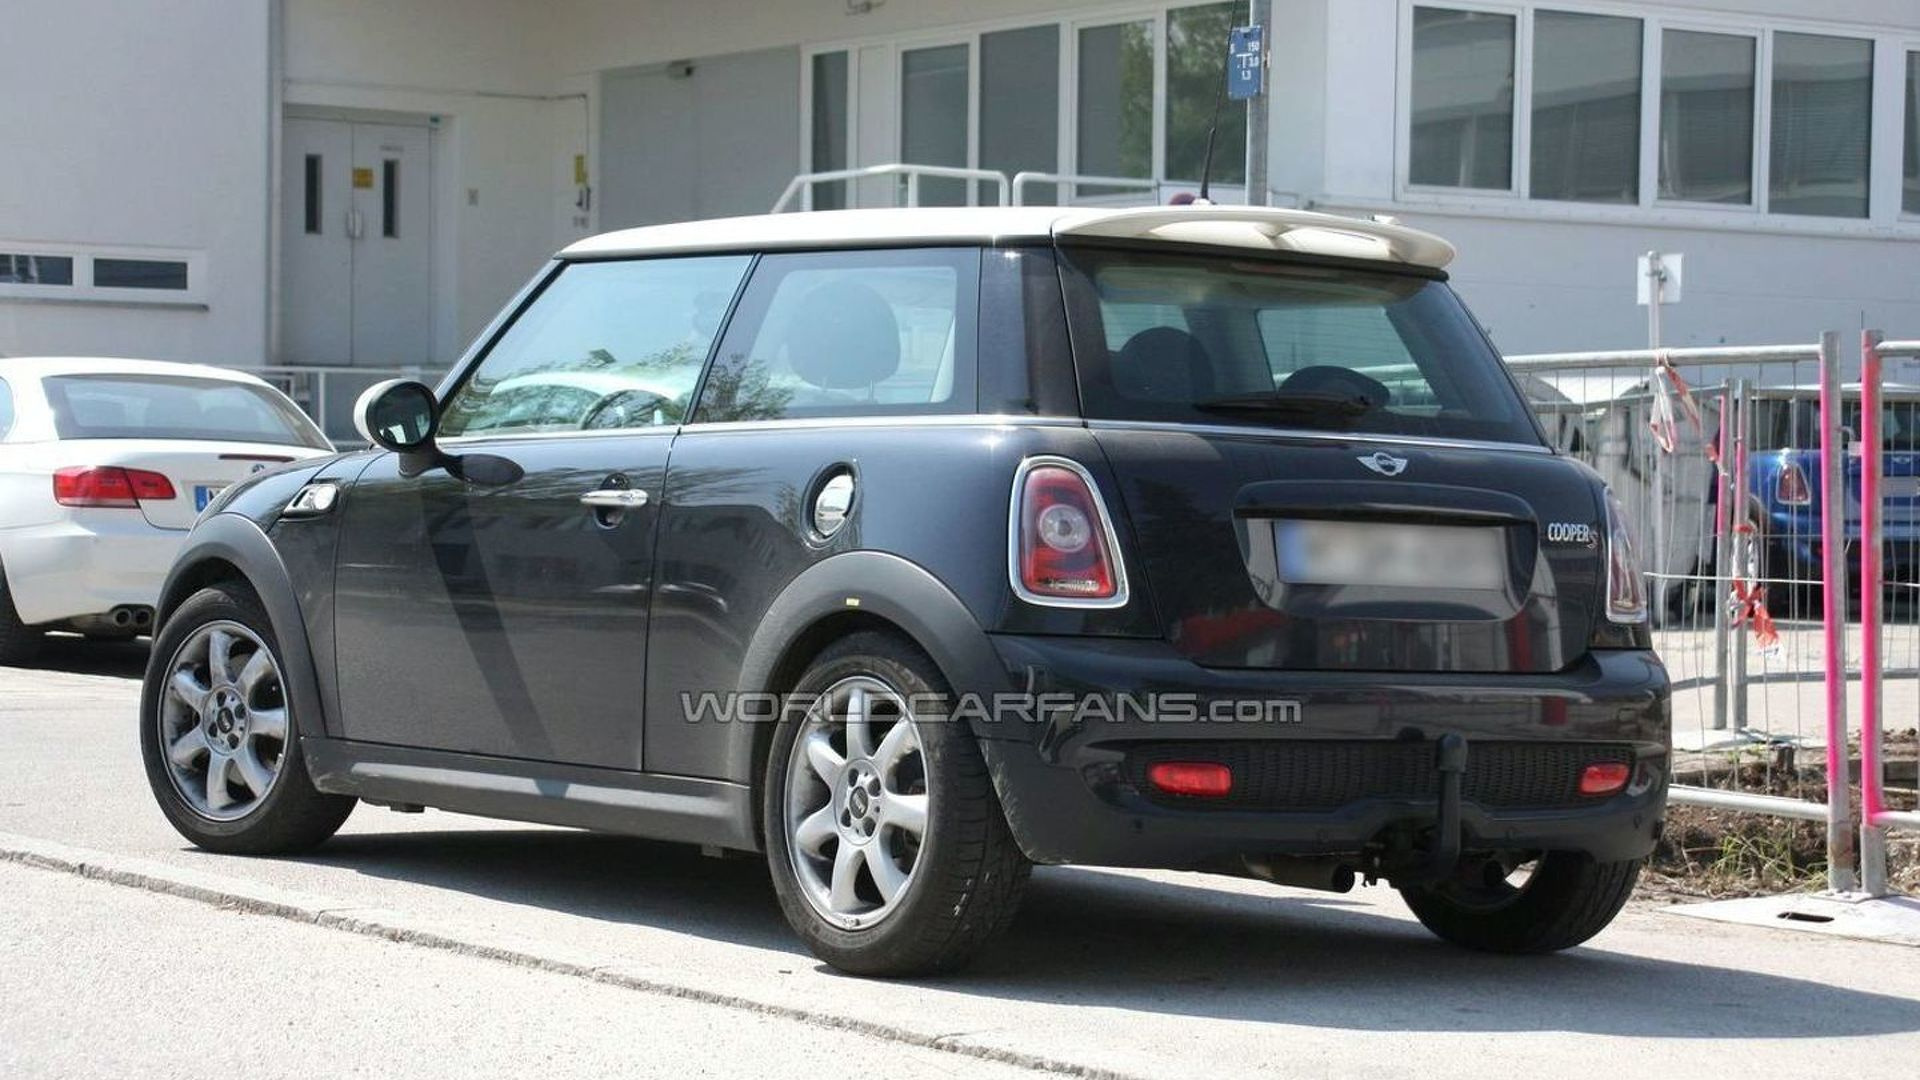 Mini Cooper S Spied With A Tow Hitch And Modified Central